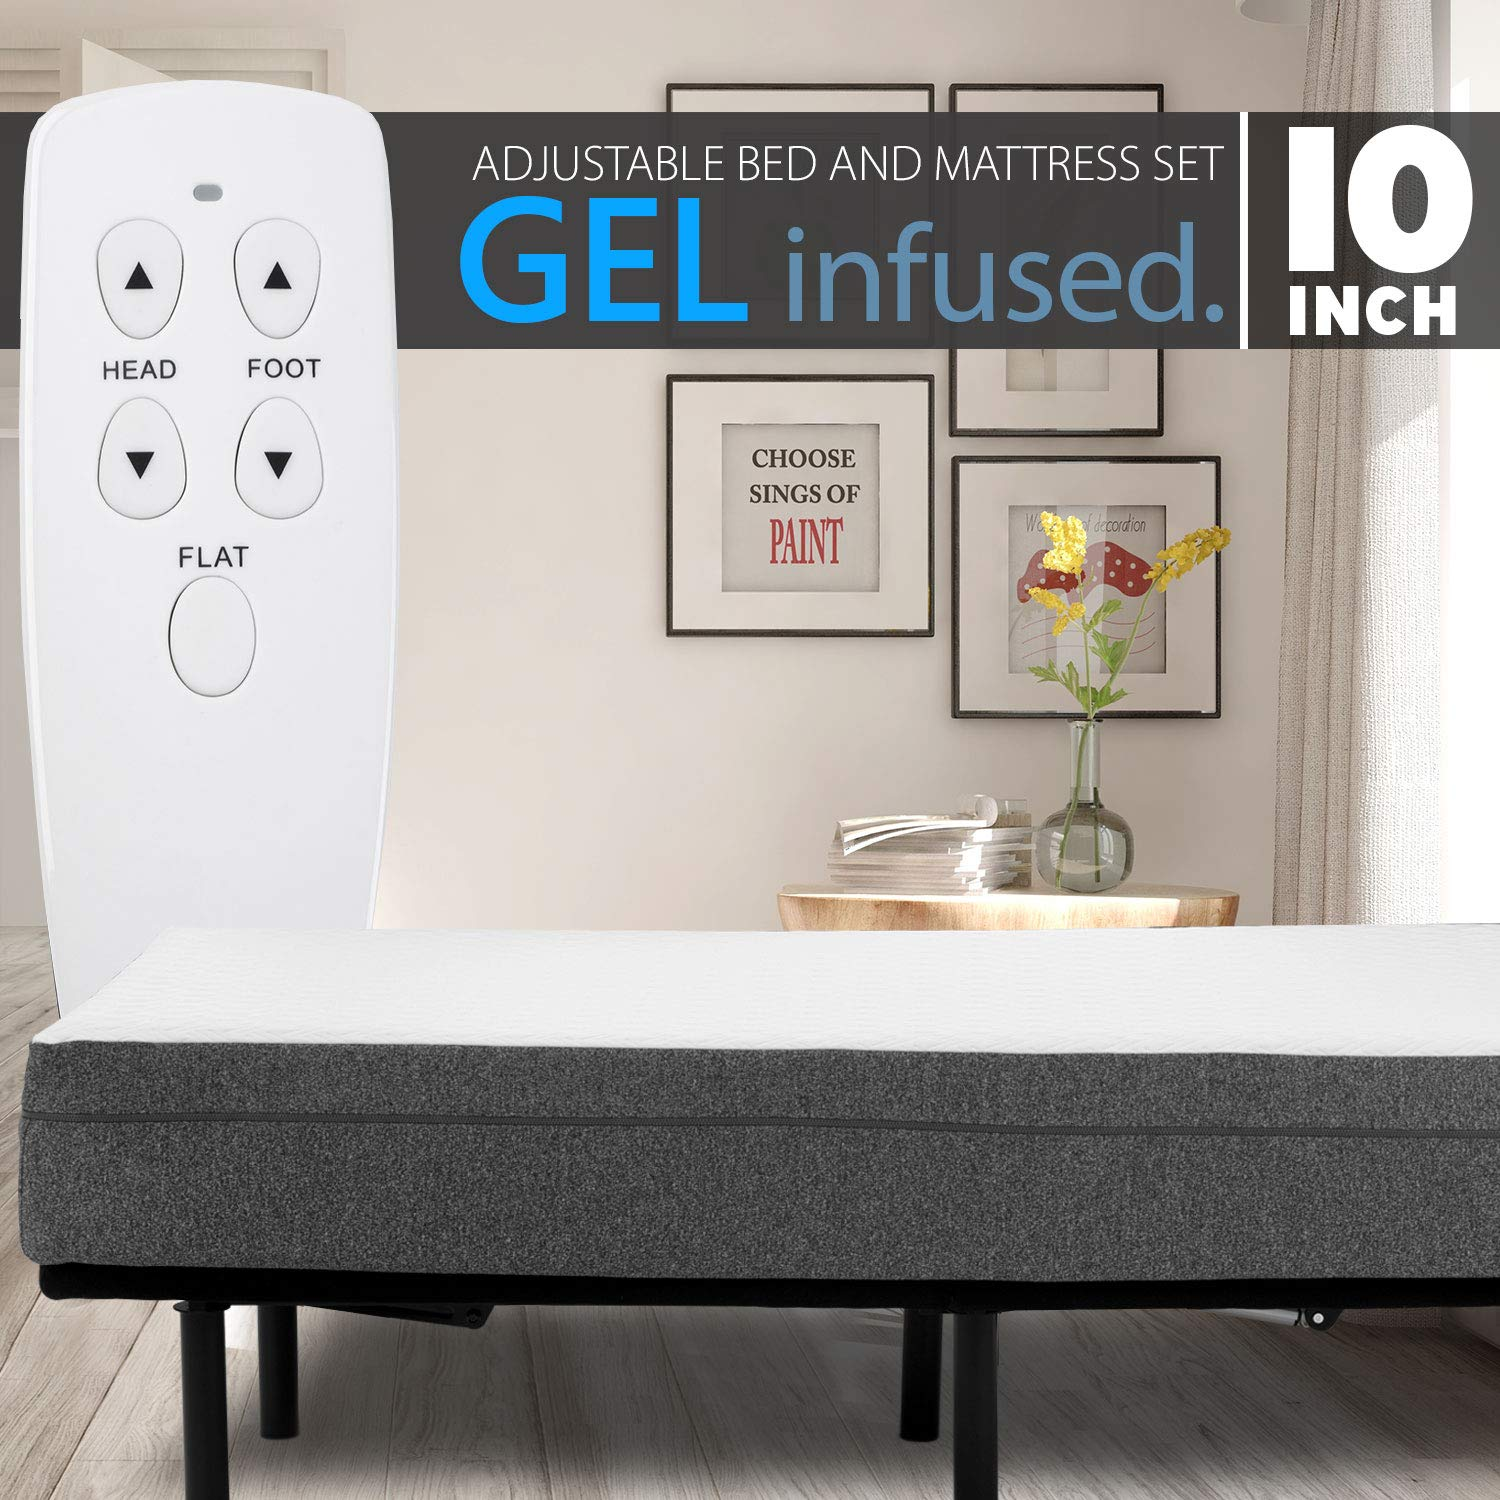 10'' Gel Infused Medium Firm Memory Foam Mattress with Adjustable Bed Frame Combo Set Head and Foot Incline Wired Remote (King)